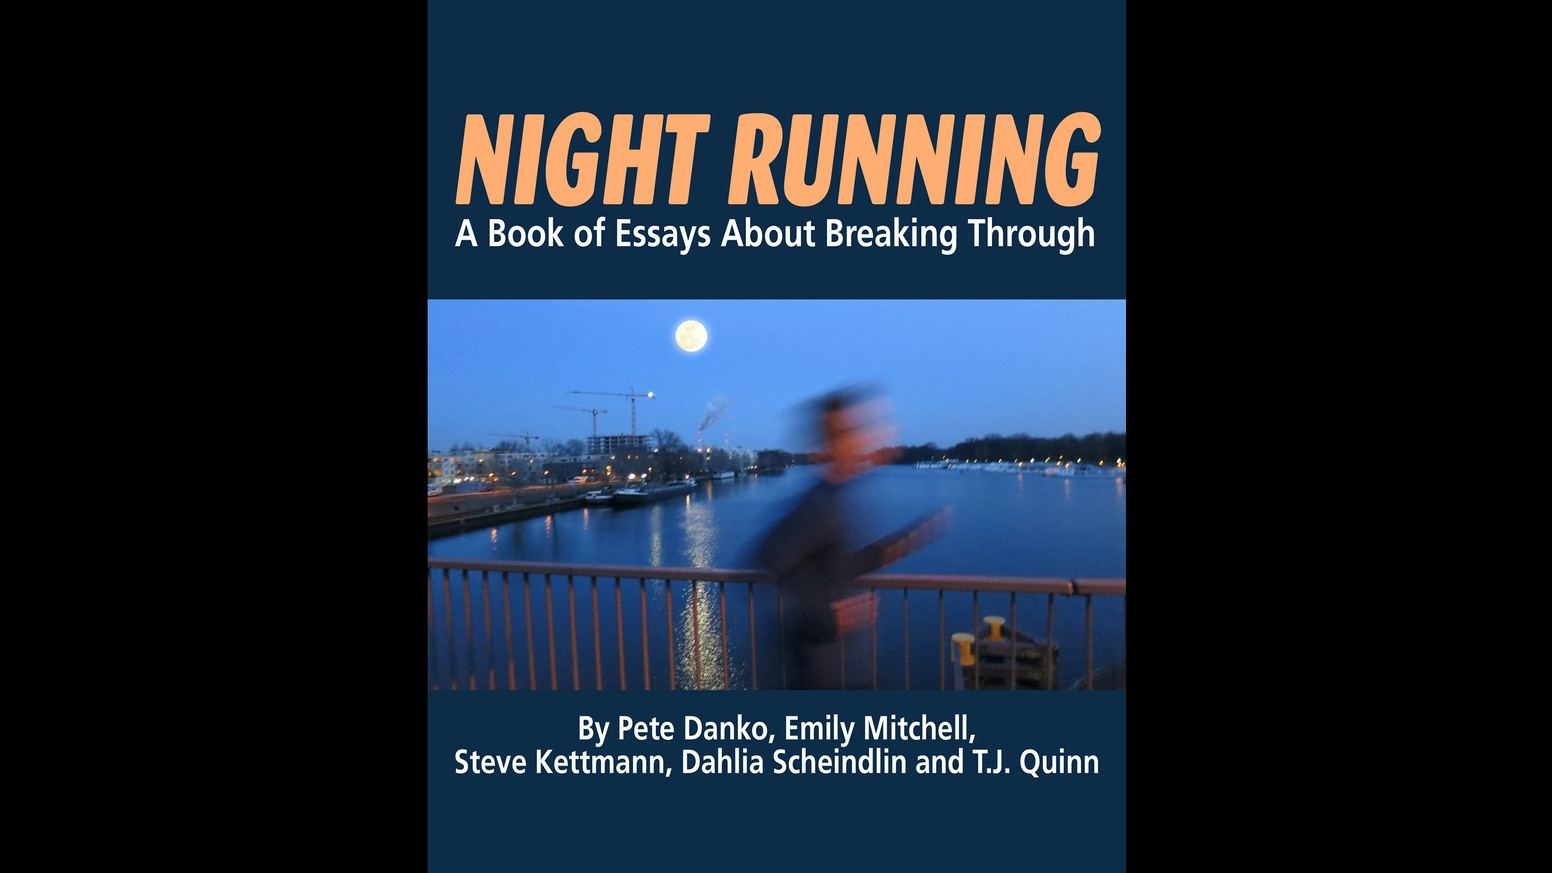 night running by steve kettmann kickstarter night running a book of essays is a project about breaking through fear and other limitations to discover a new sense of possibility